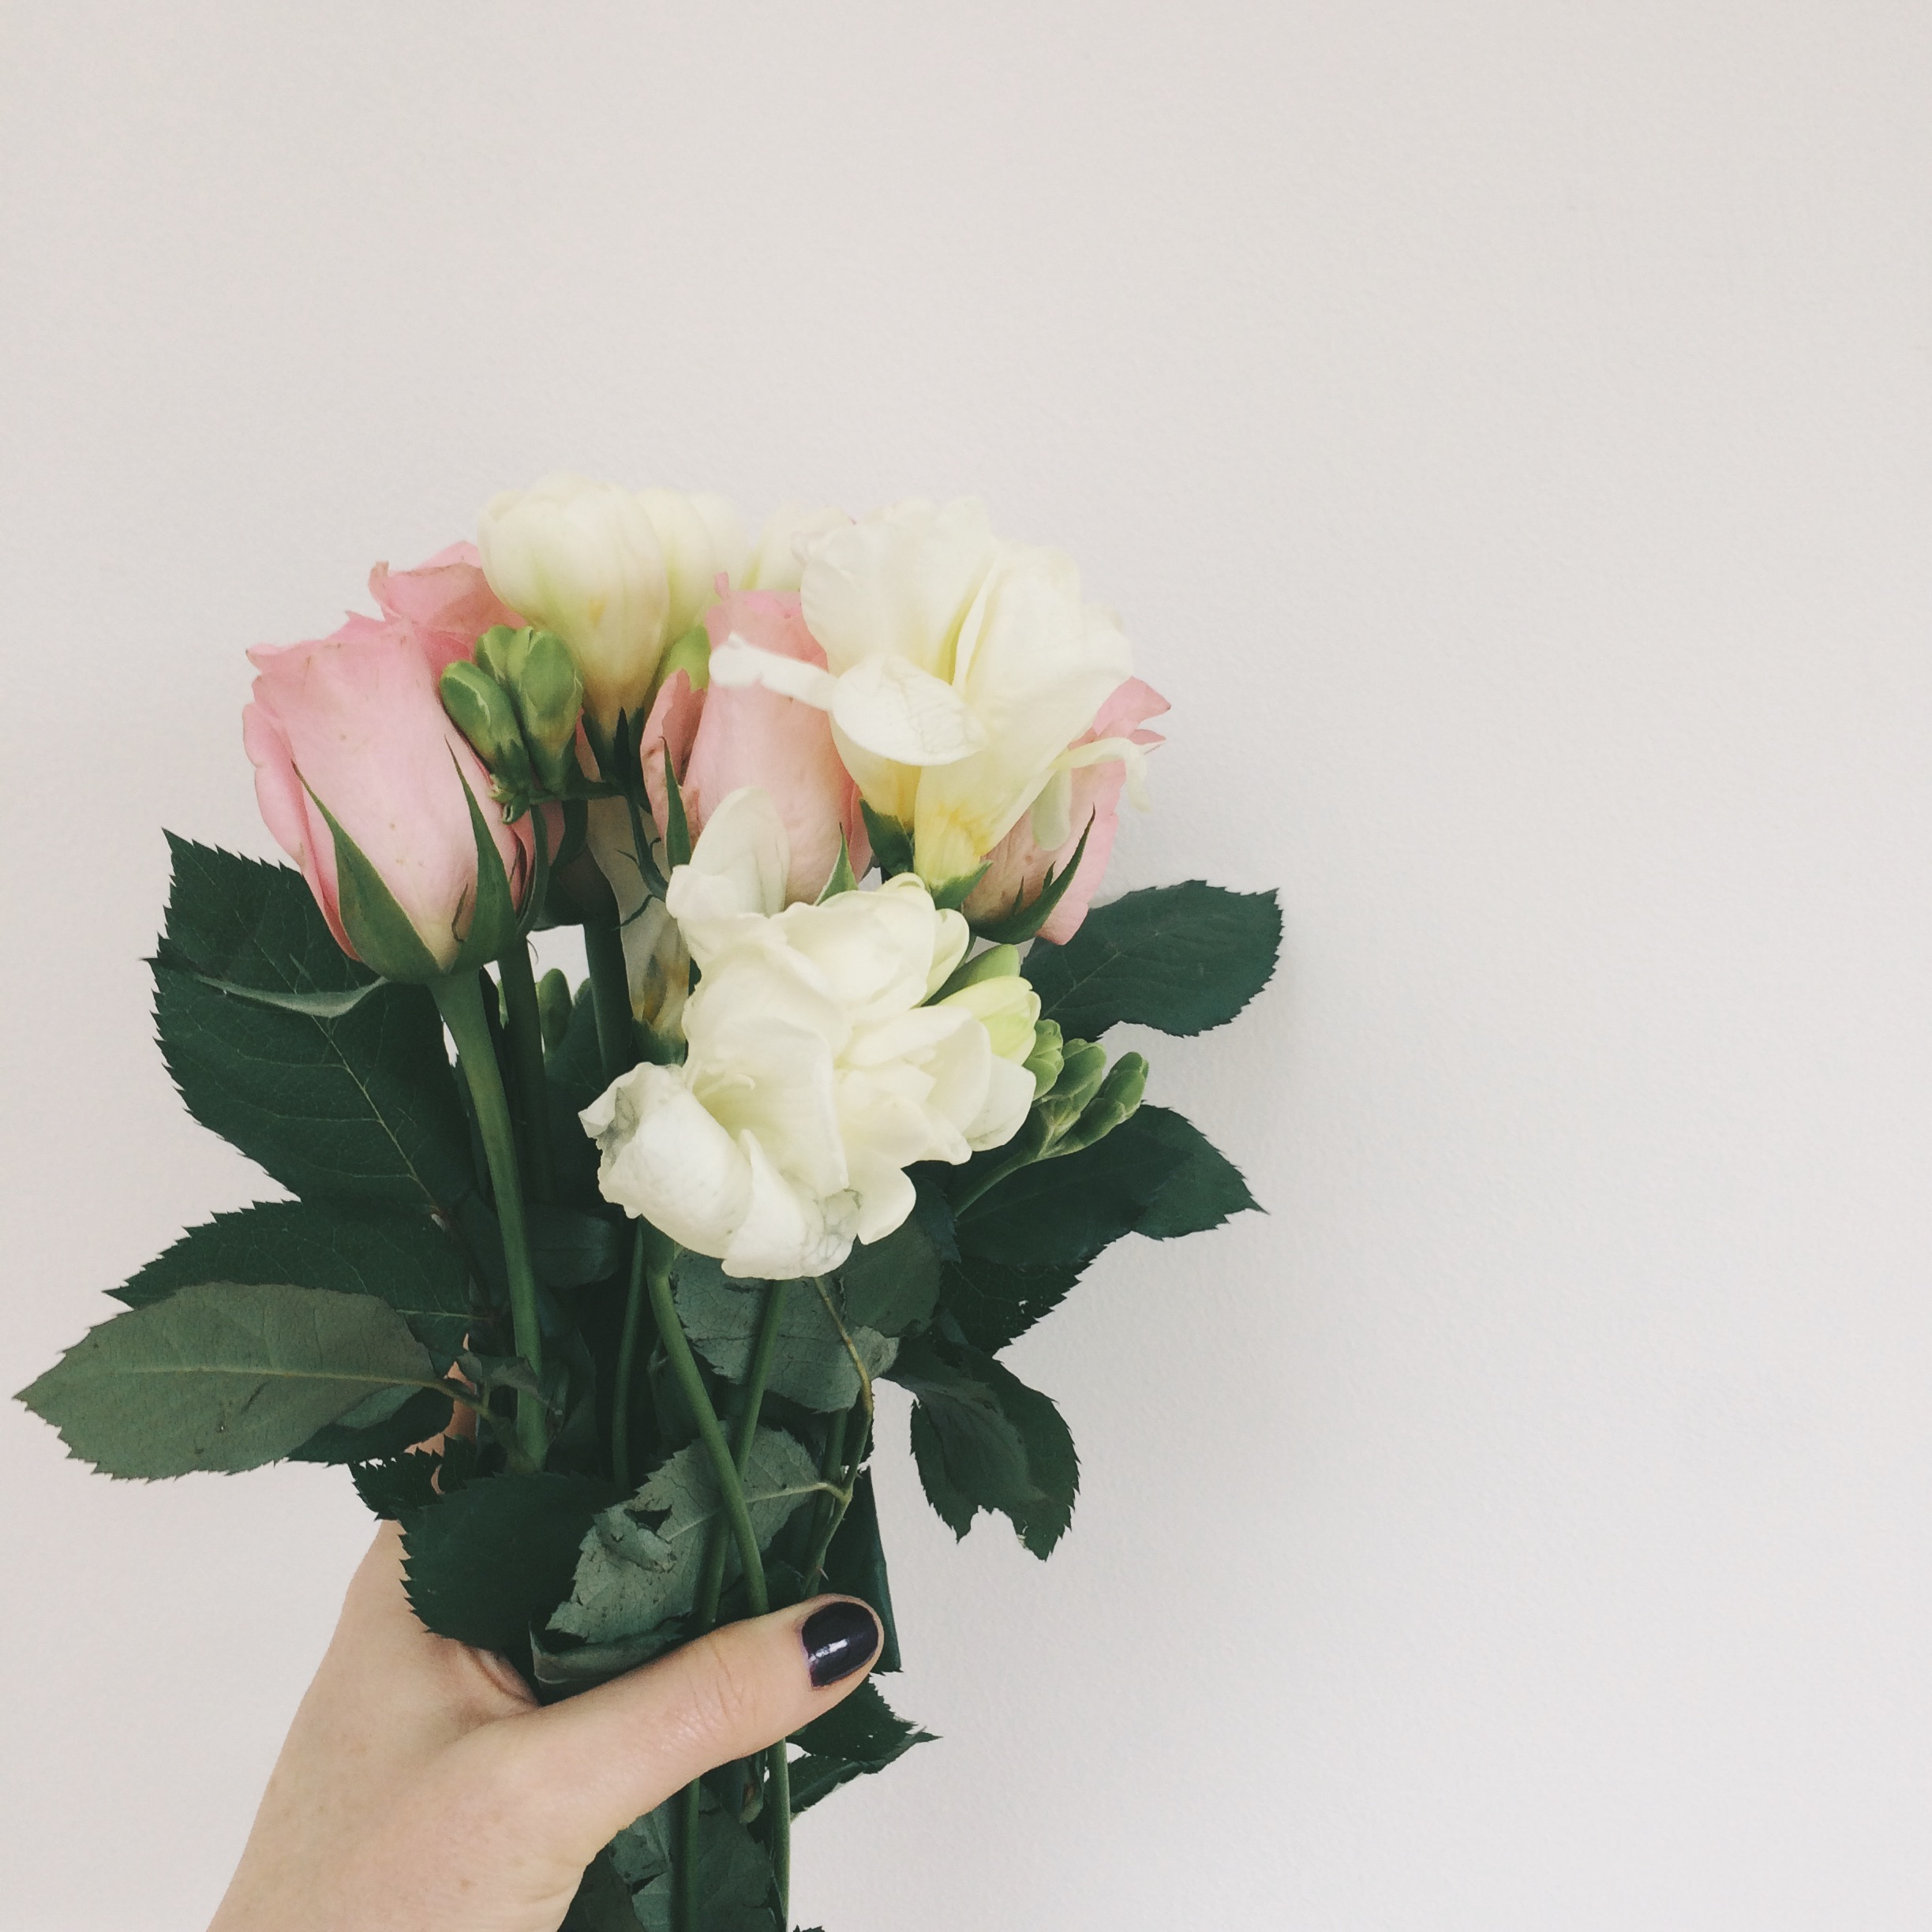 12 Easy Instagram Photos From One Bunch Of Flowers